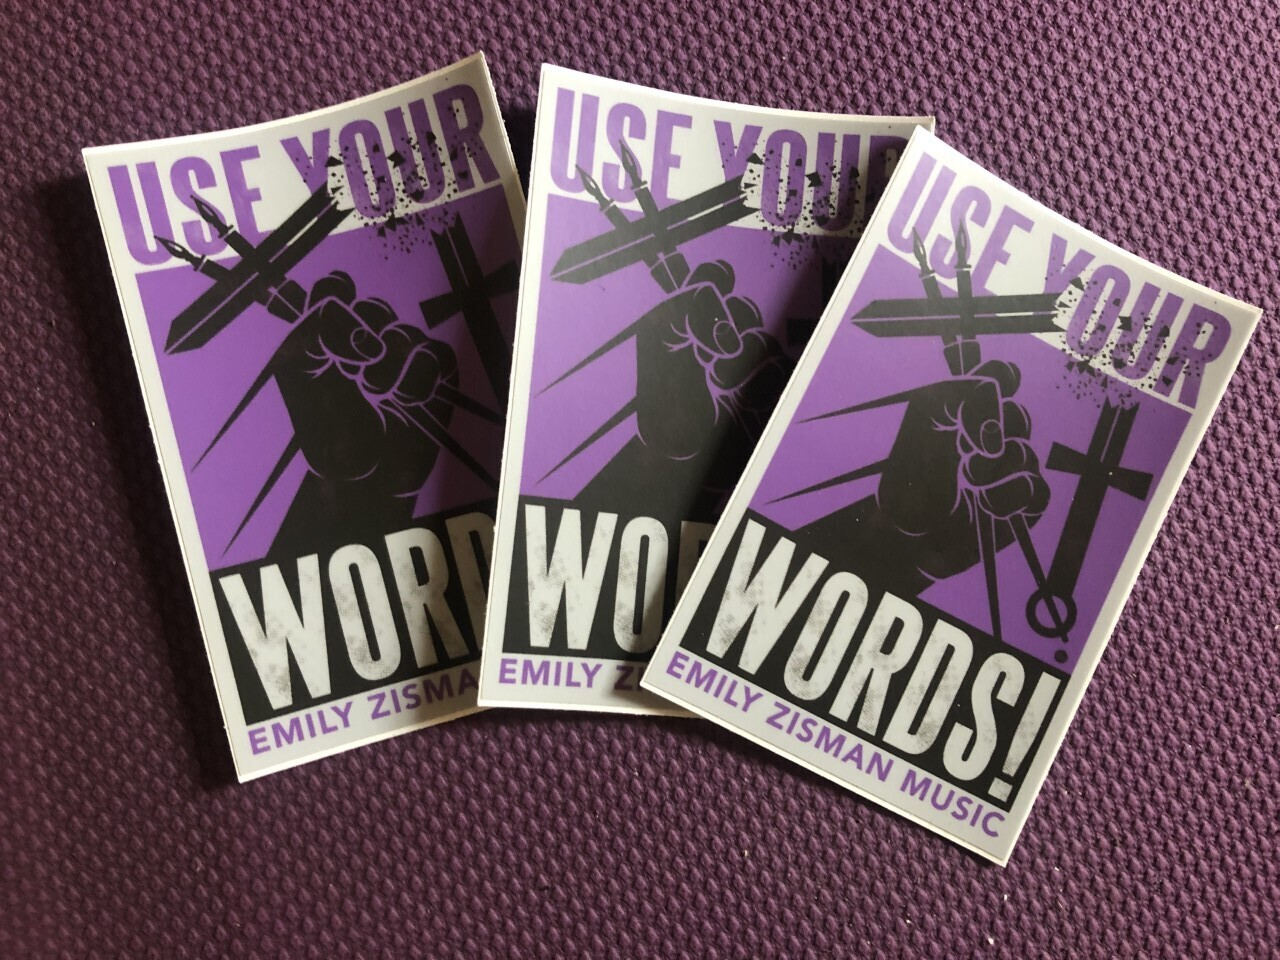 USE YOUR WORDS stickers